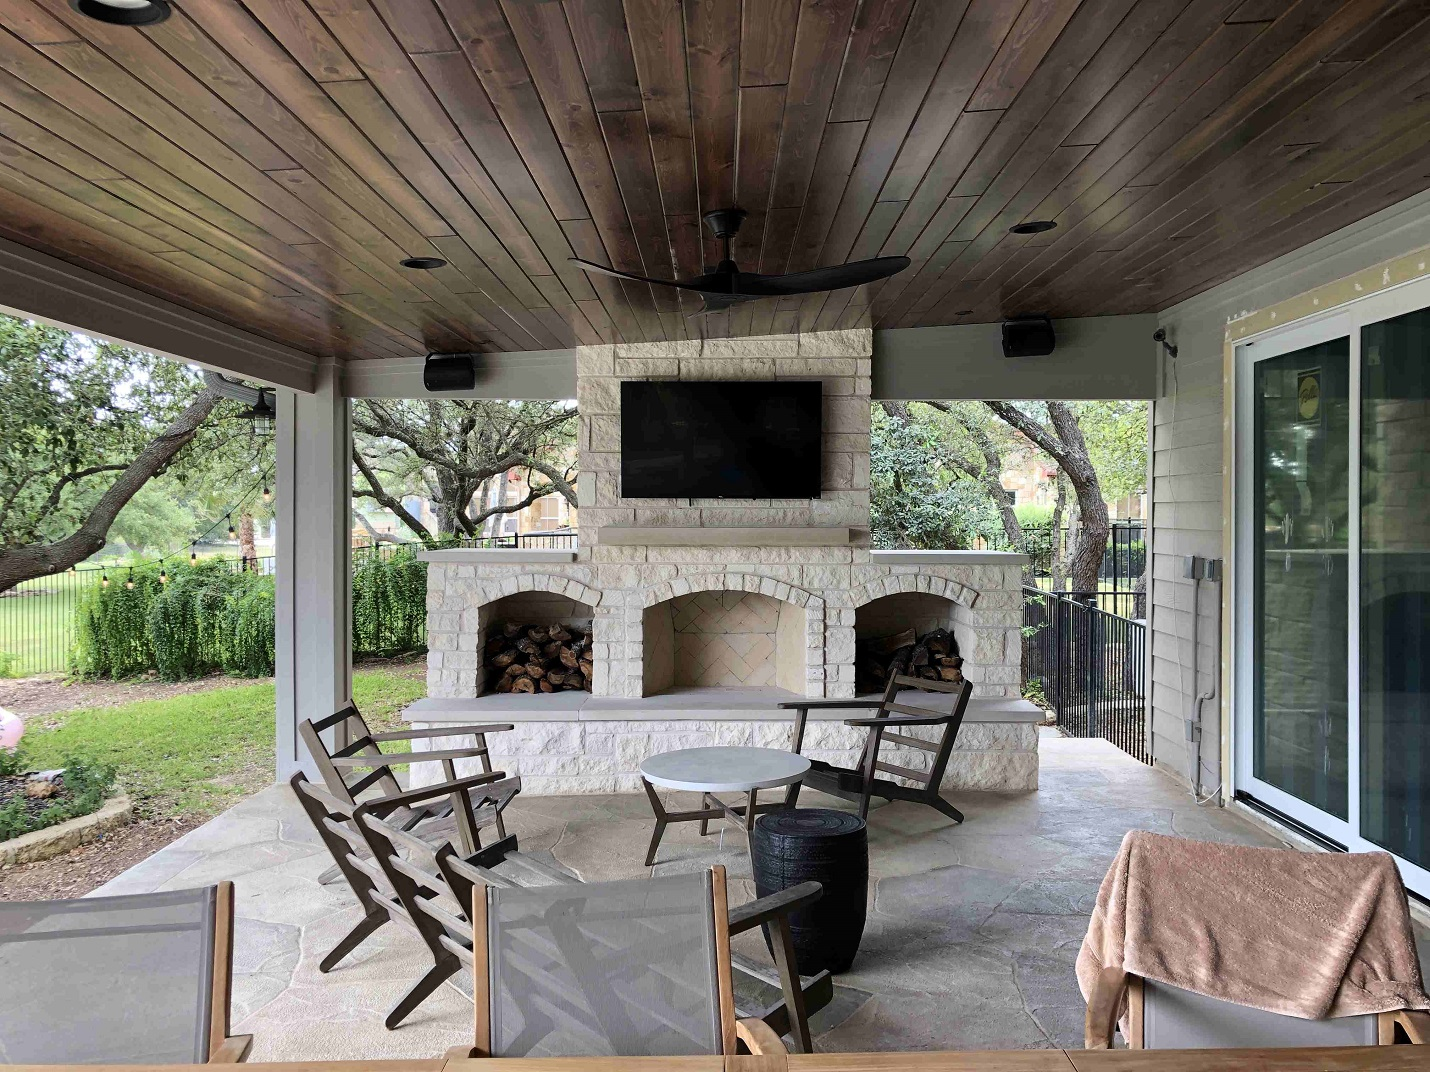 Look-at-this-beautiful-outdoor-fireplace-that-is-now-part-of-the-covered-patio